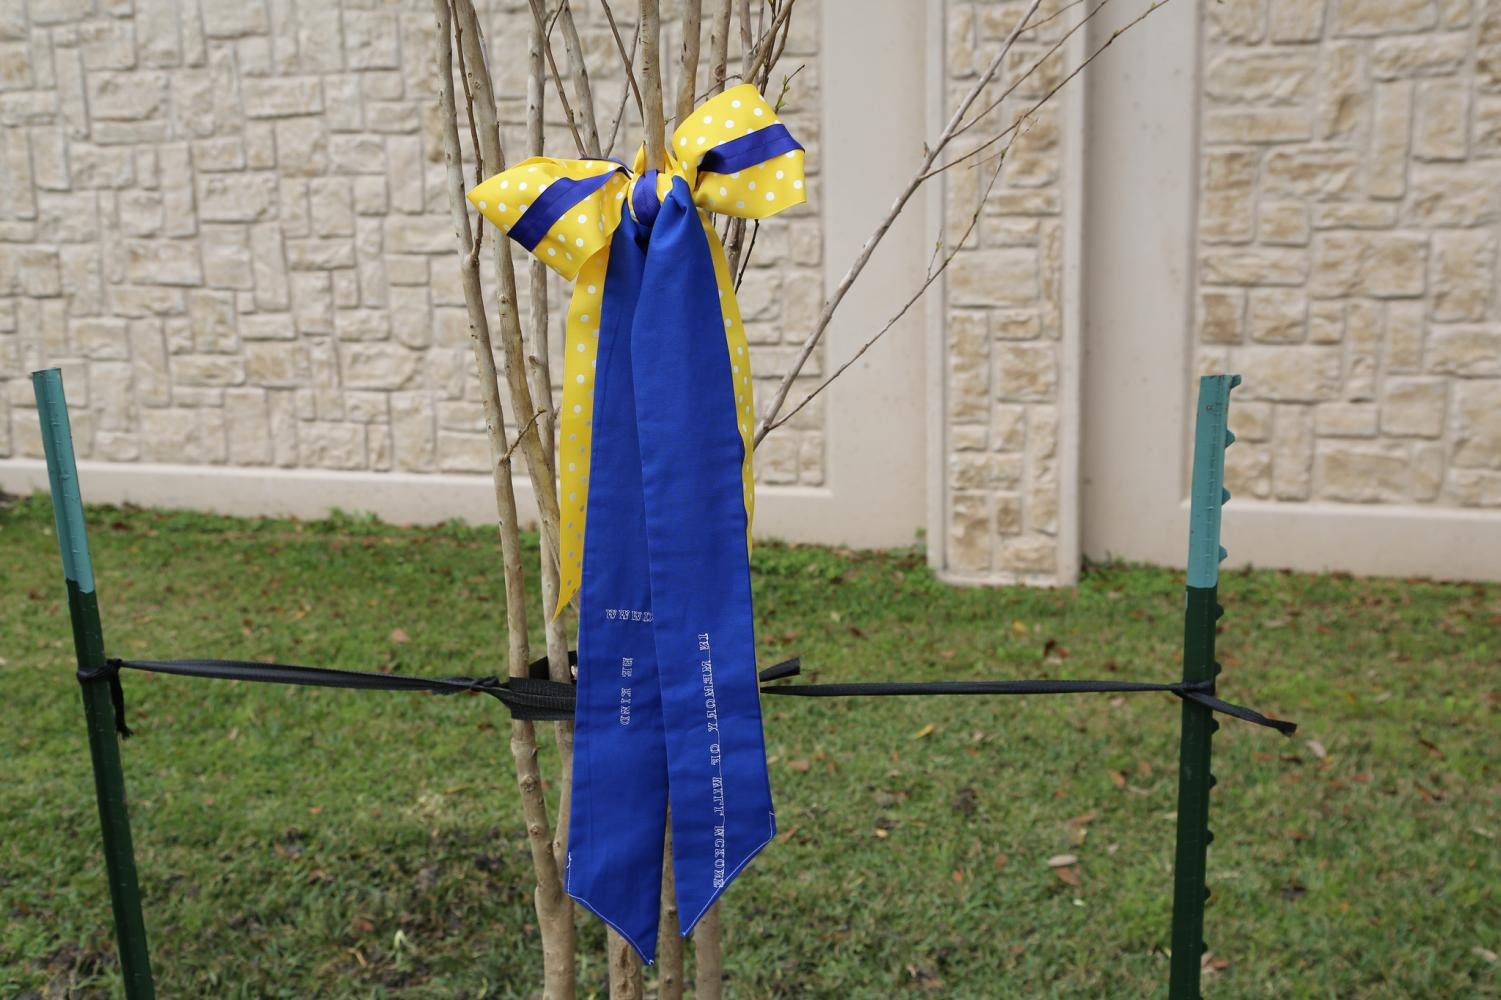 Ribbons were tied to the trees in Will's honor as well.